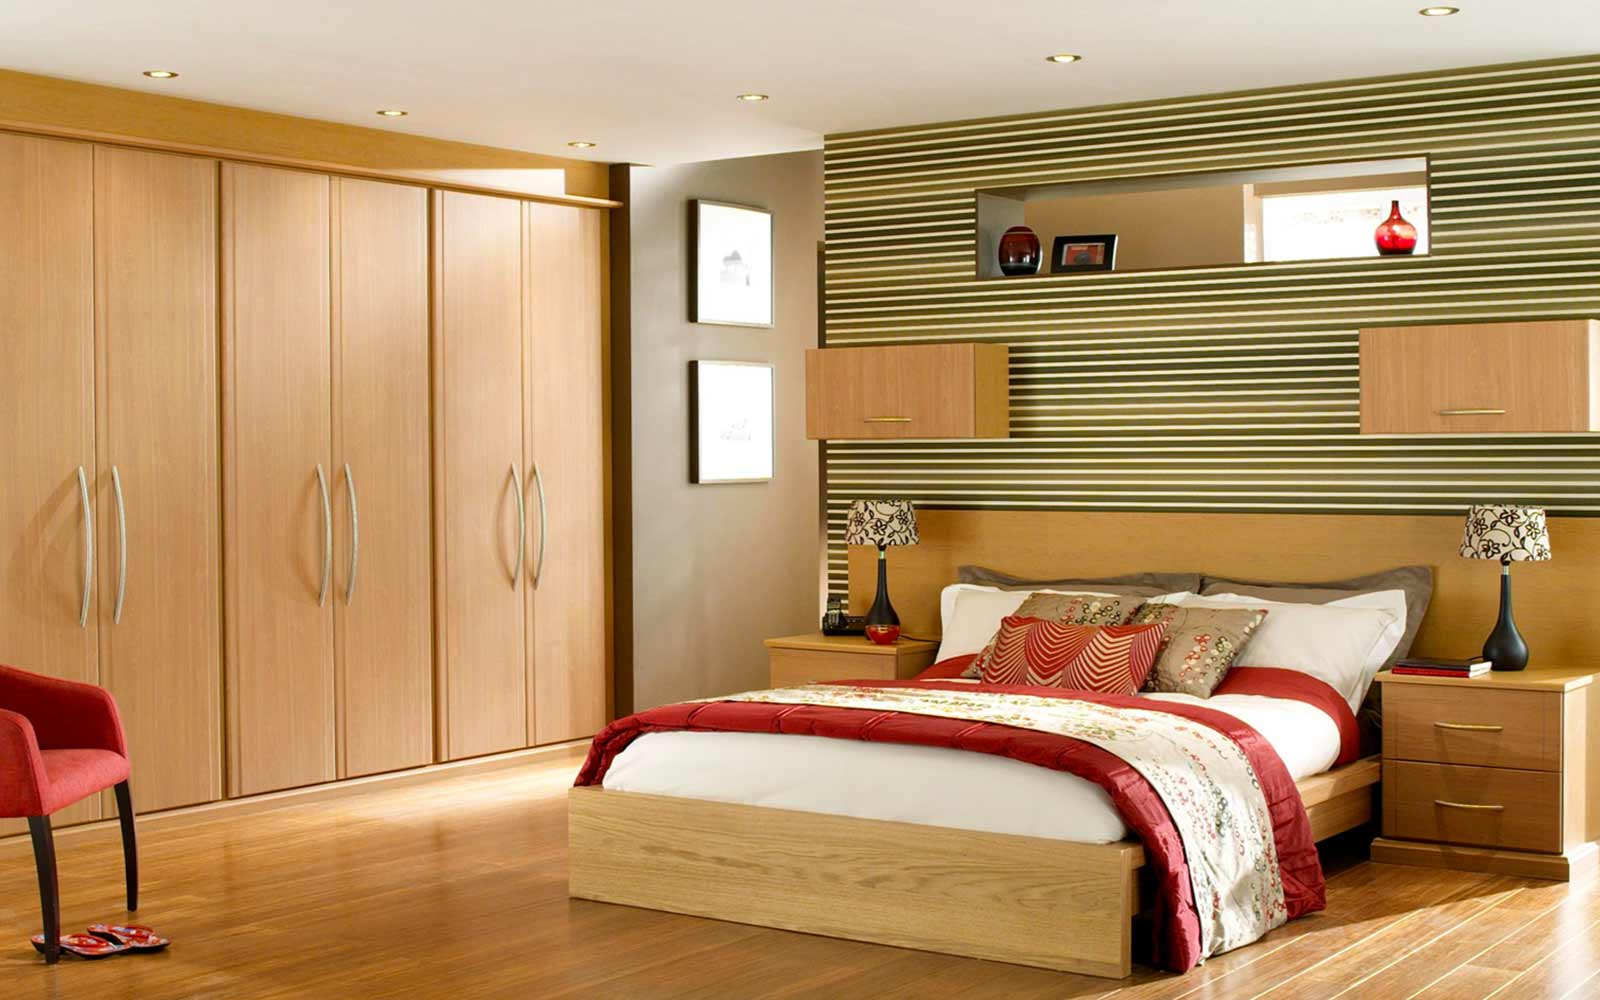 35 images of wardrobe designs for bedrooms Bedroom design